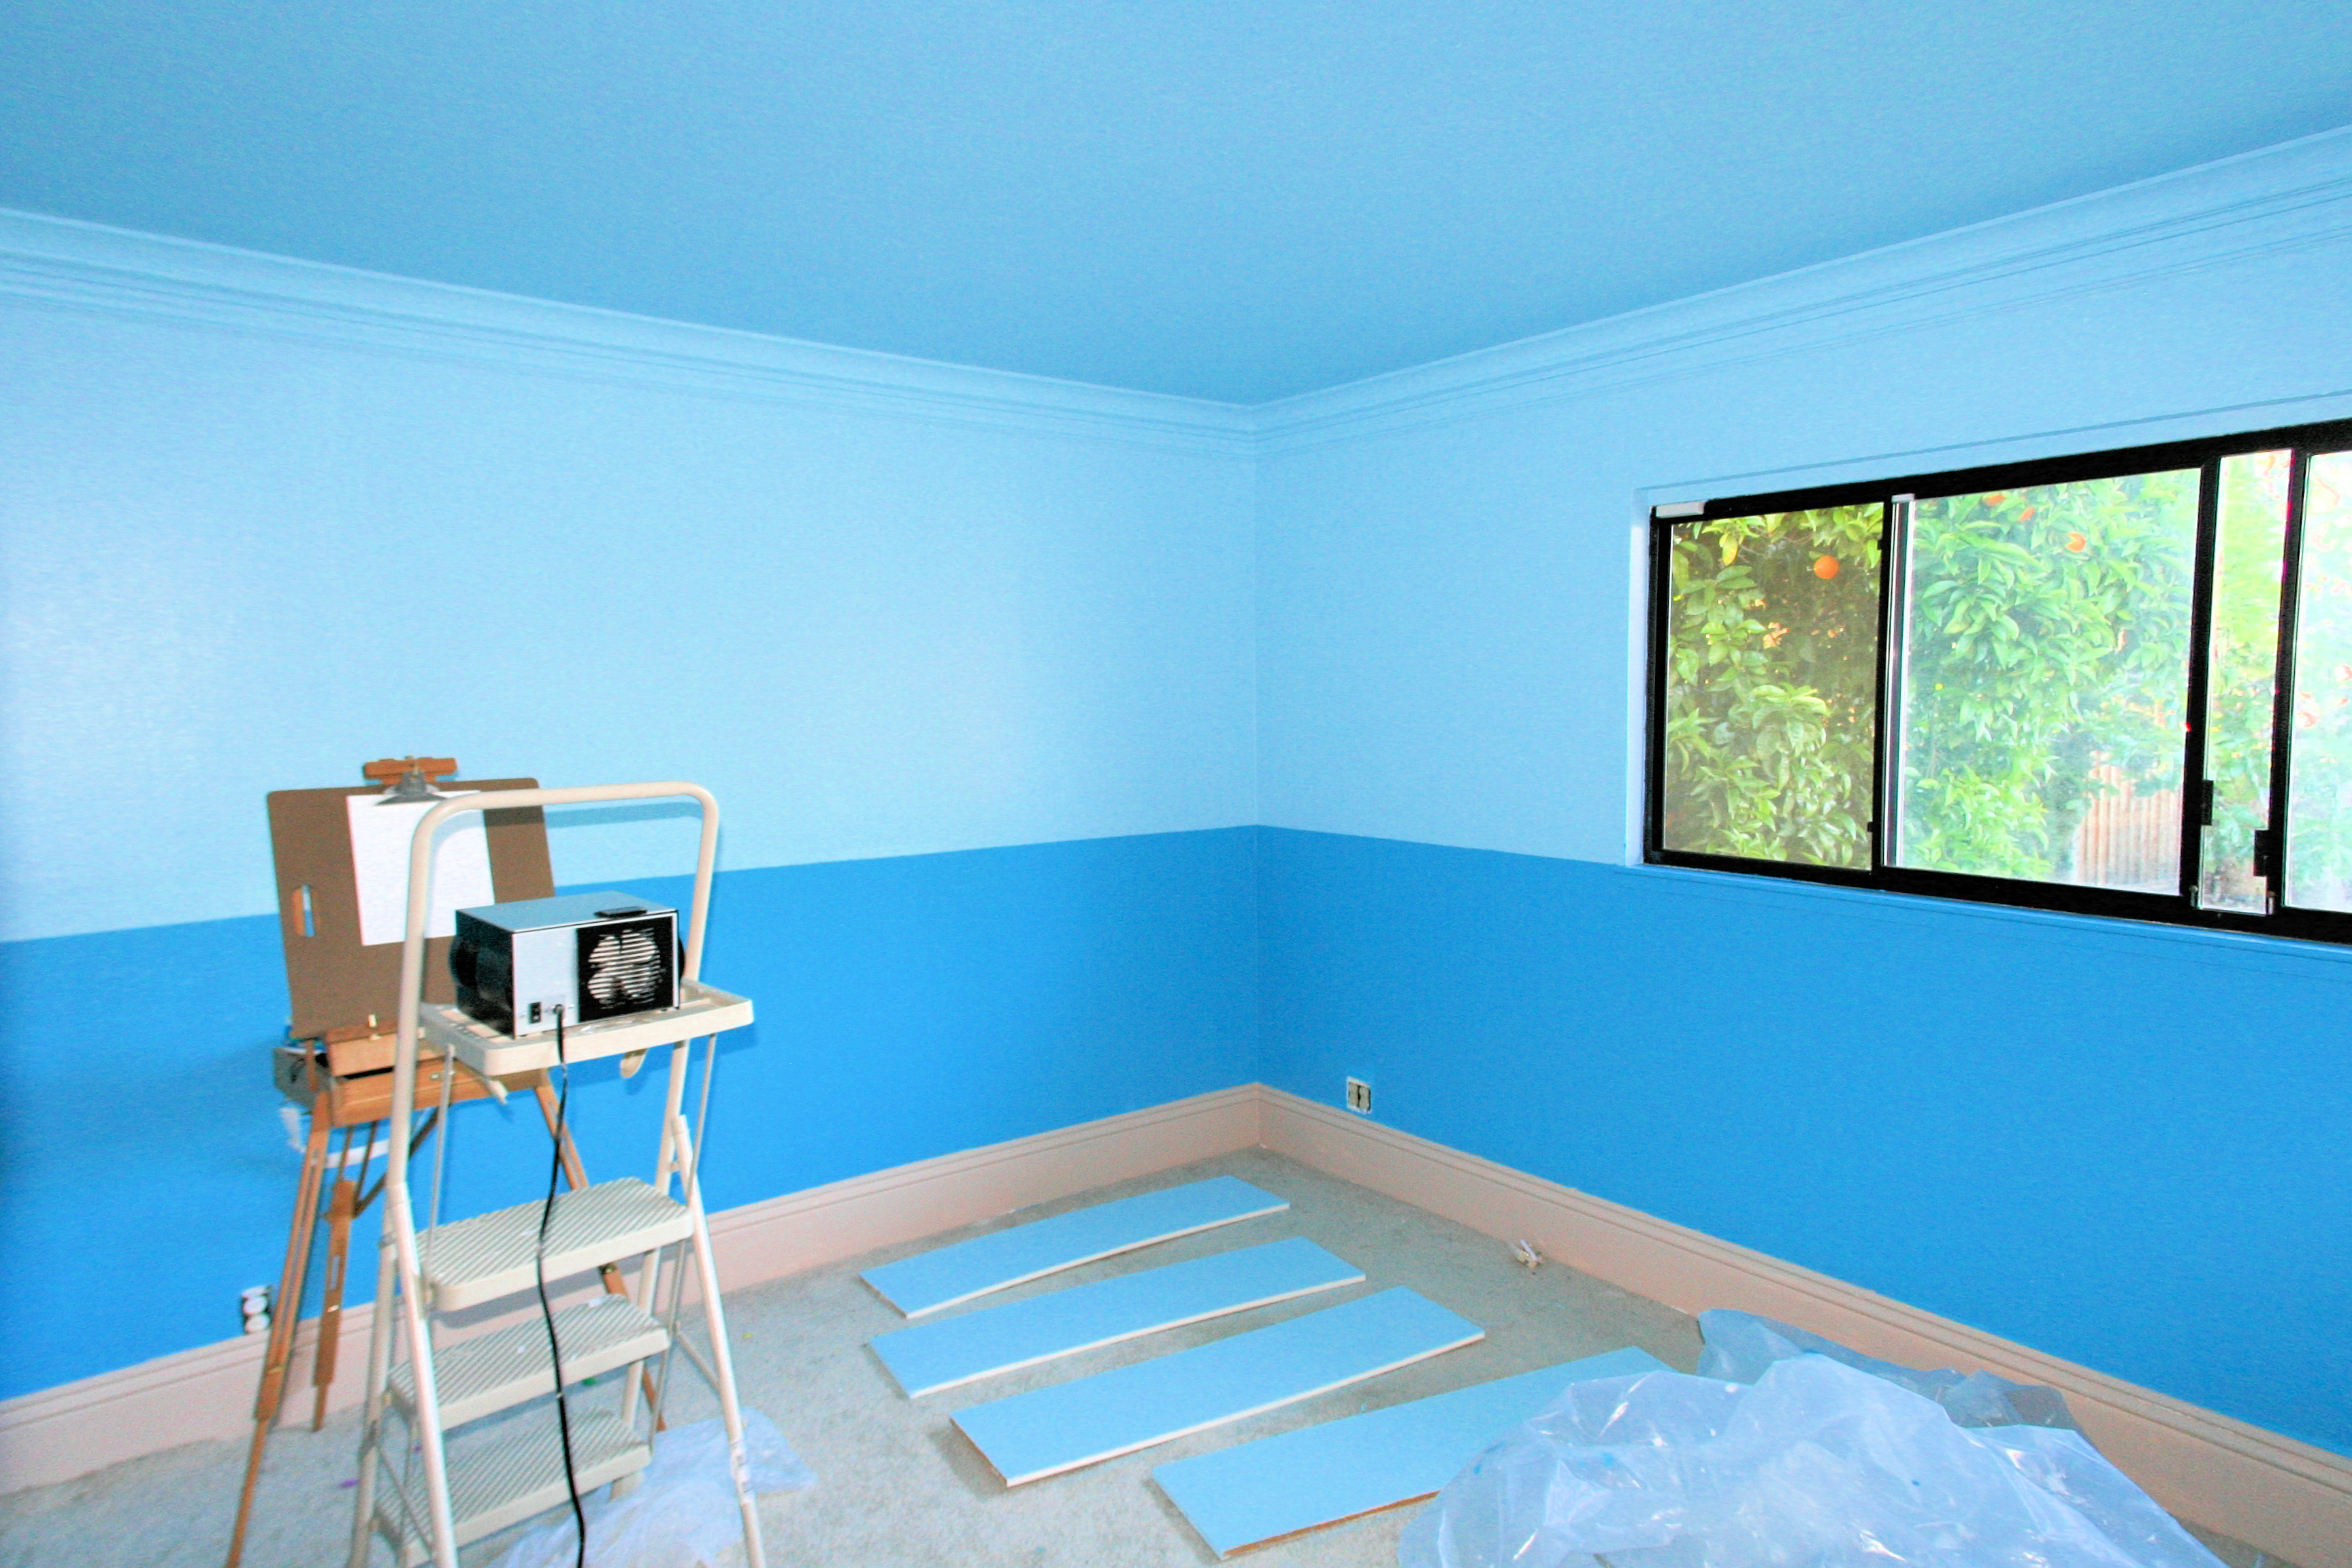 Painting A Room Blue Blue Room